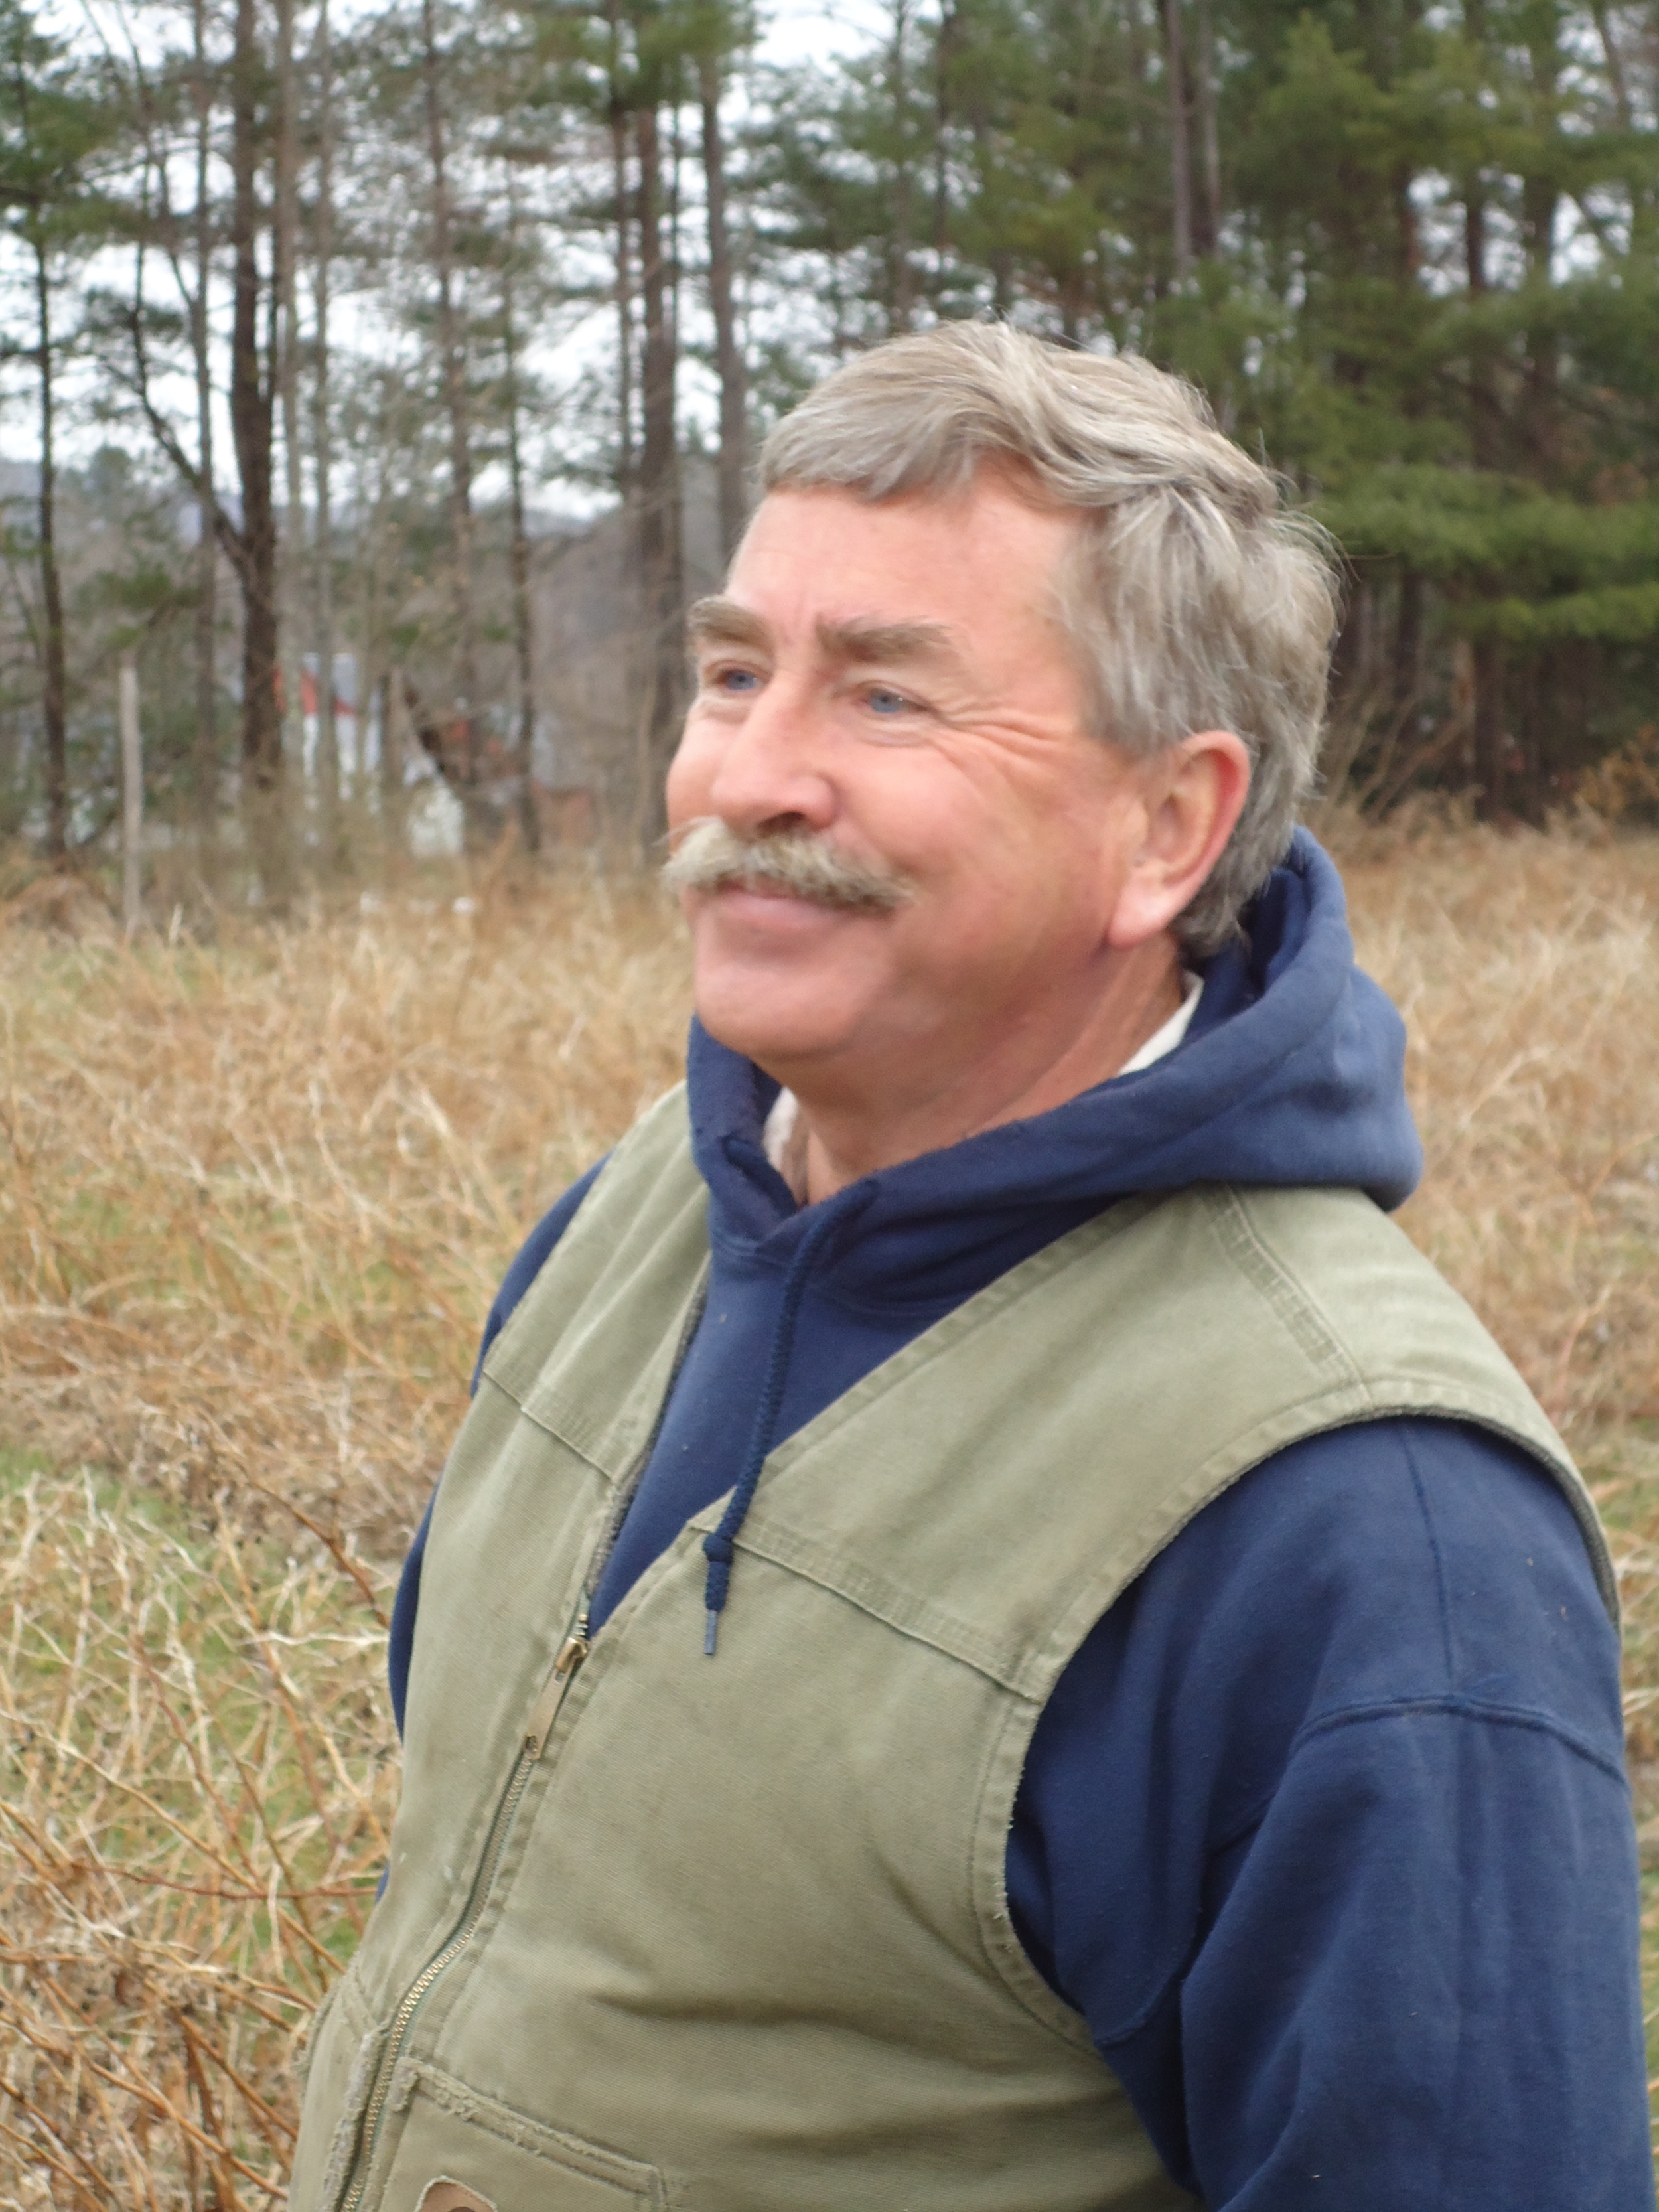 Friendly Staff    Despite the commonly held belief that New Hampshire farmers are taciturn, cranky and occasionally a bit curmudgeonly, we are fortunate to have a very friendly and approachable staff who look forward to helping you wherever possible. Just look for them in their dark green vests with the Riverview Farm logo.